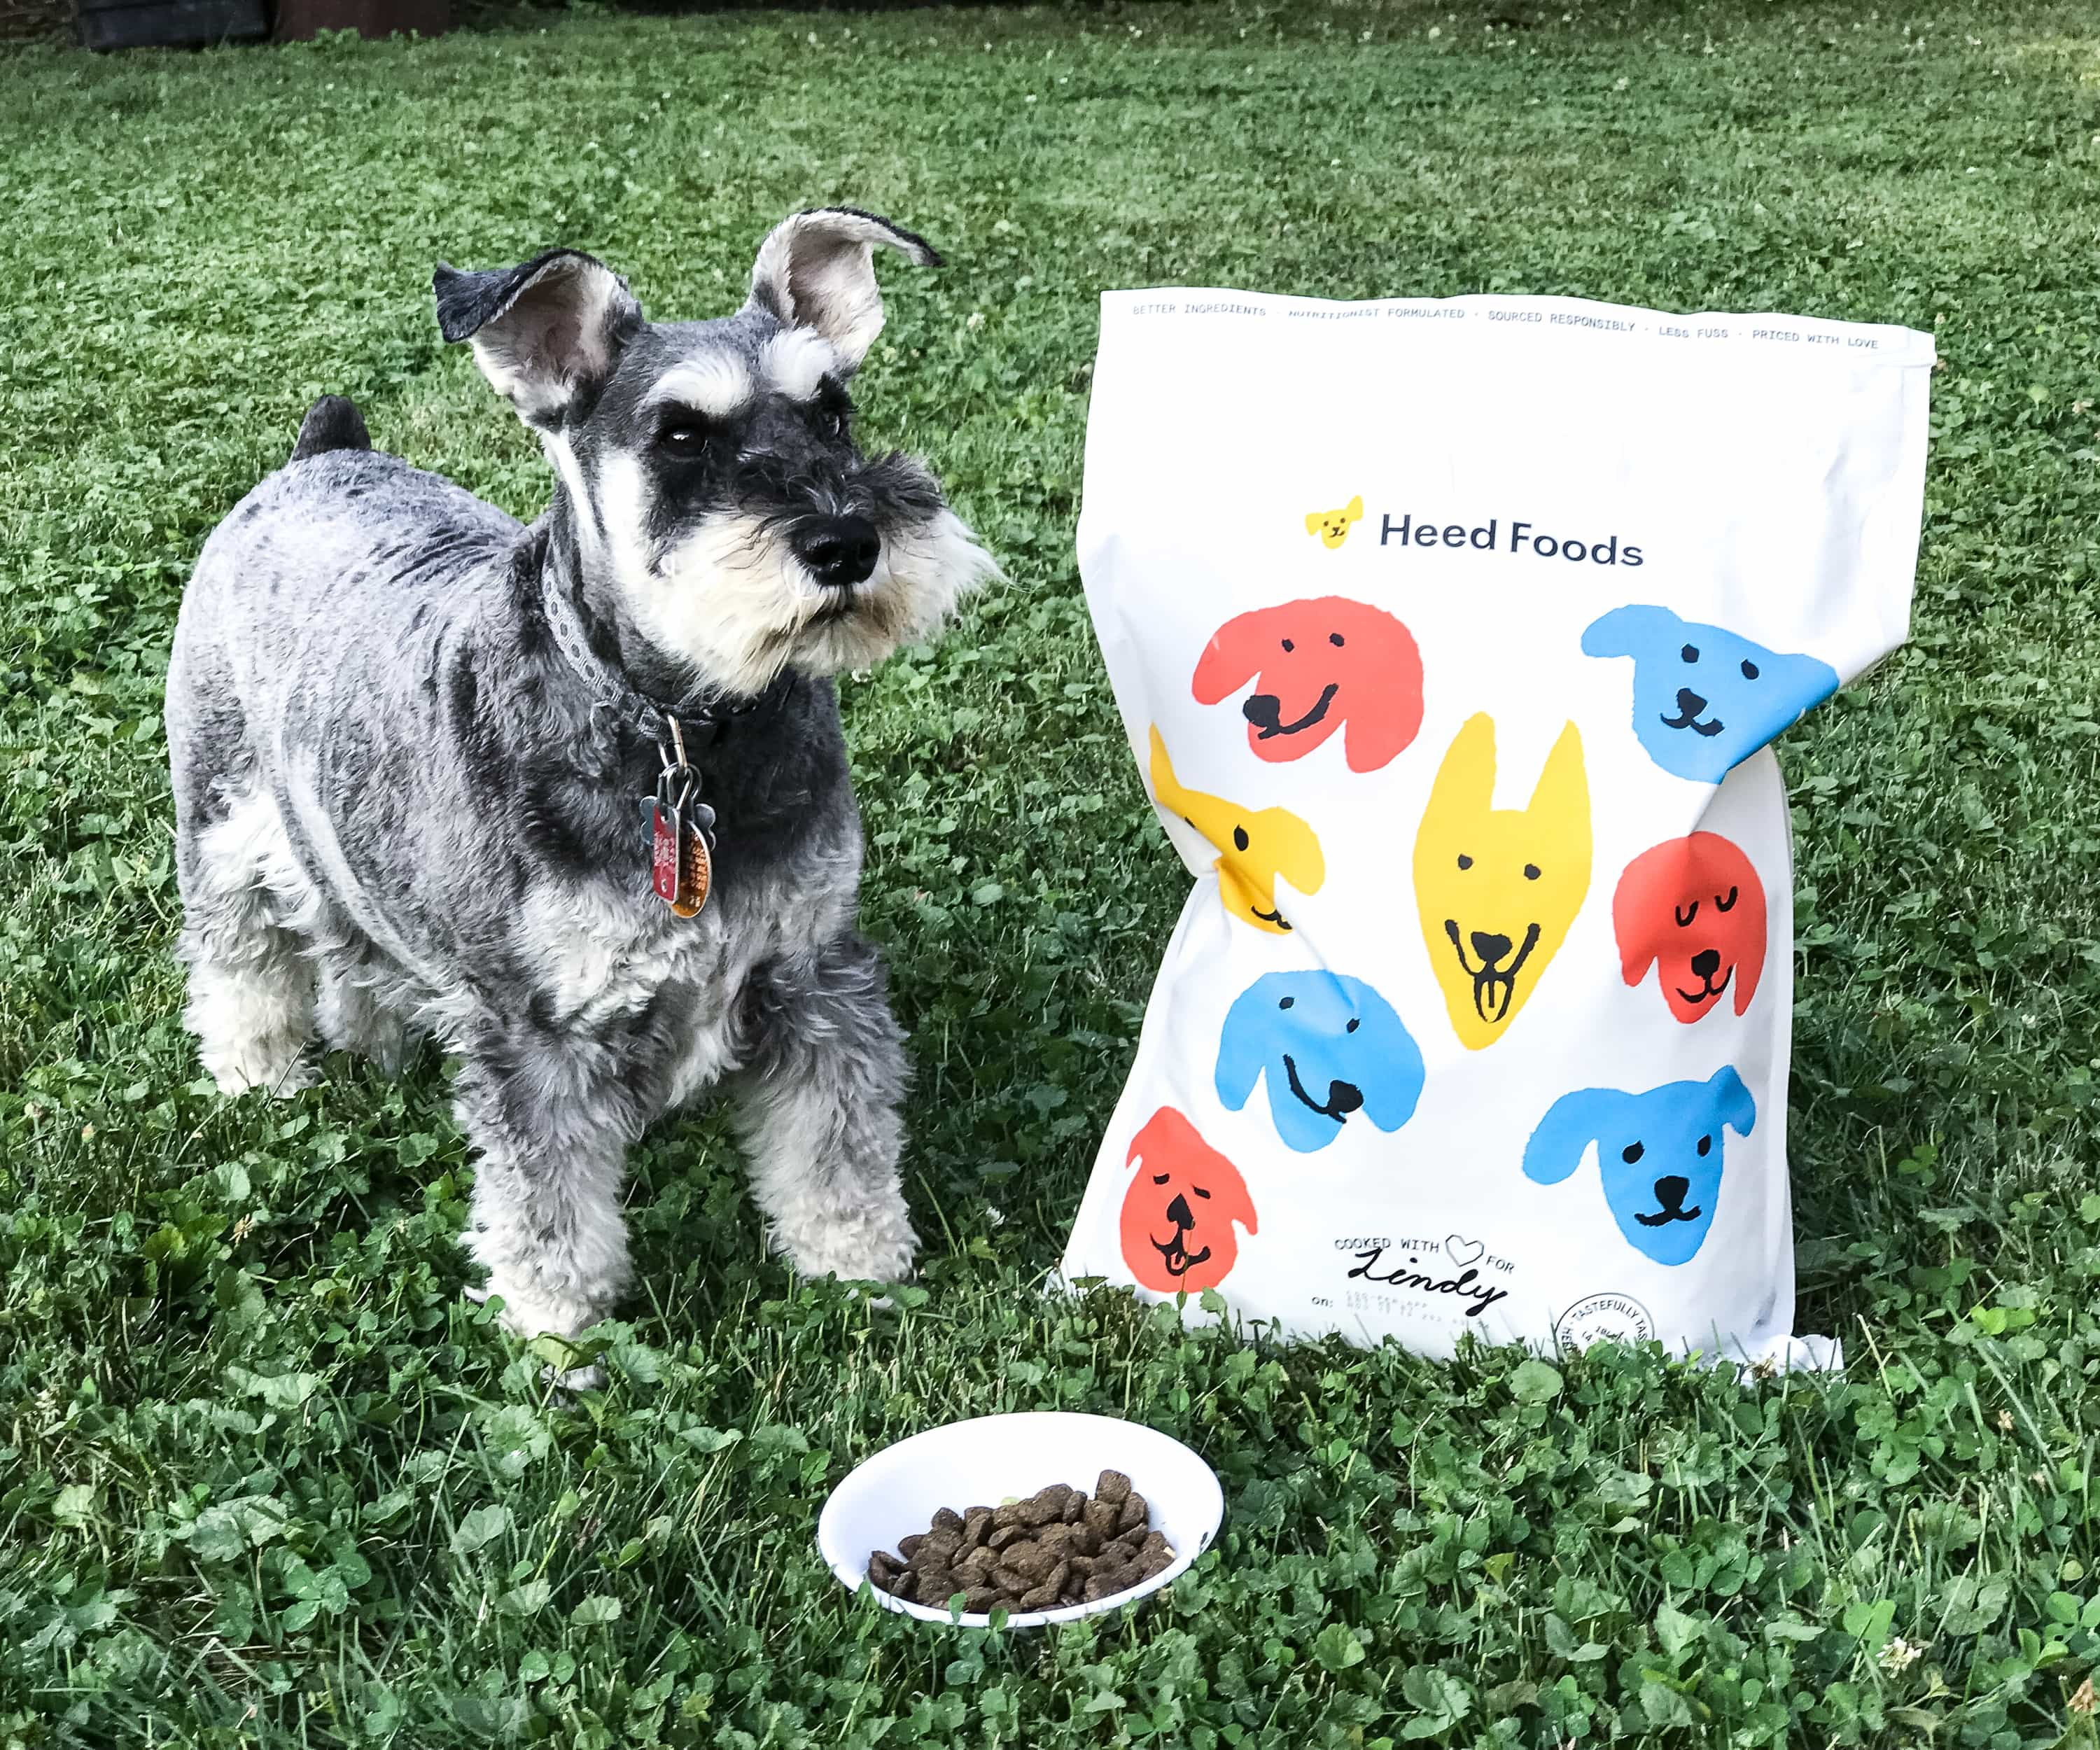 Heed Foods Fresh Salmon & Superfoods Kibble is now available + 20% Off Coupon!